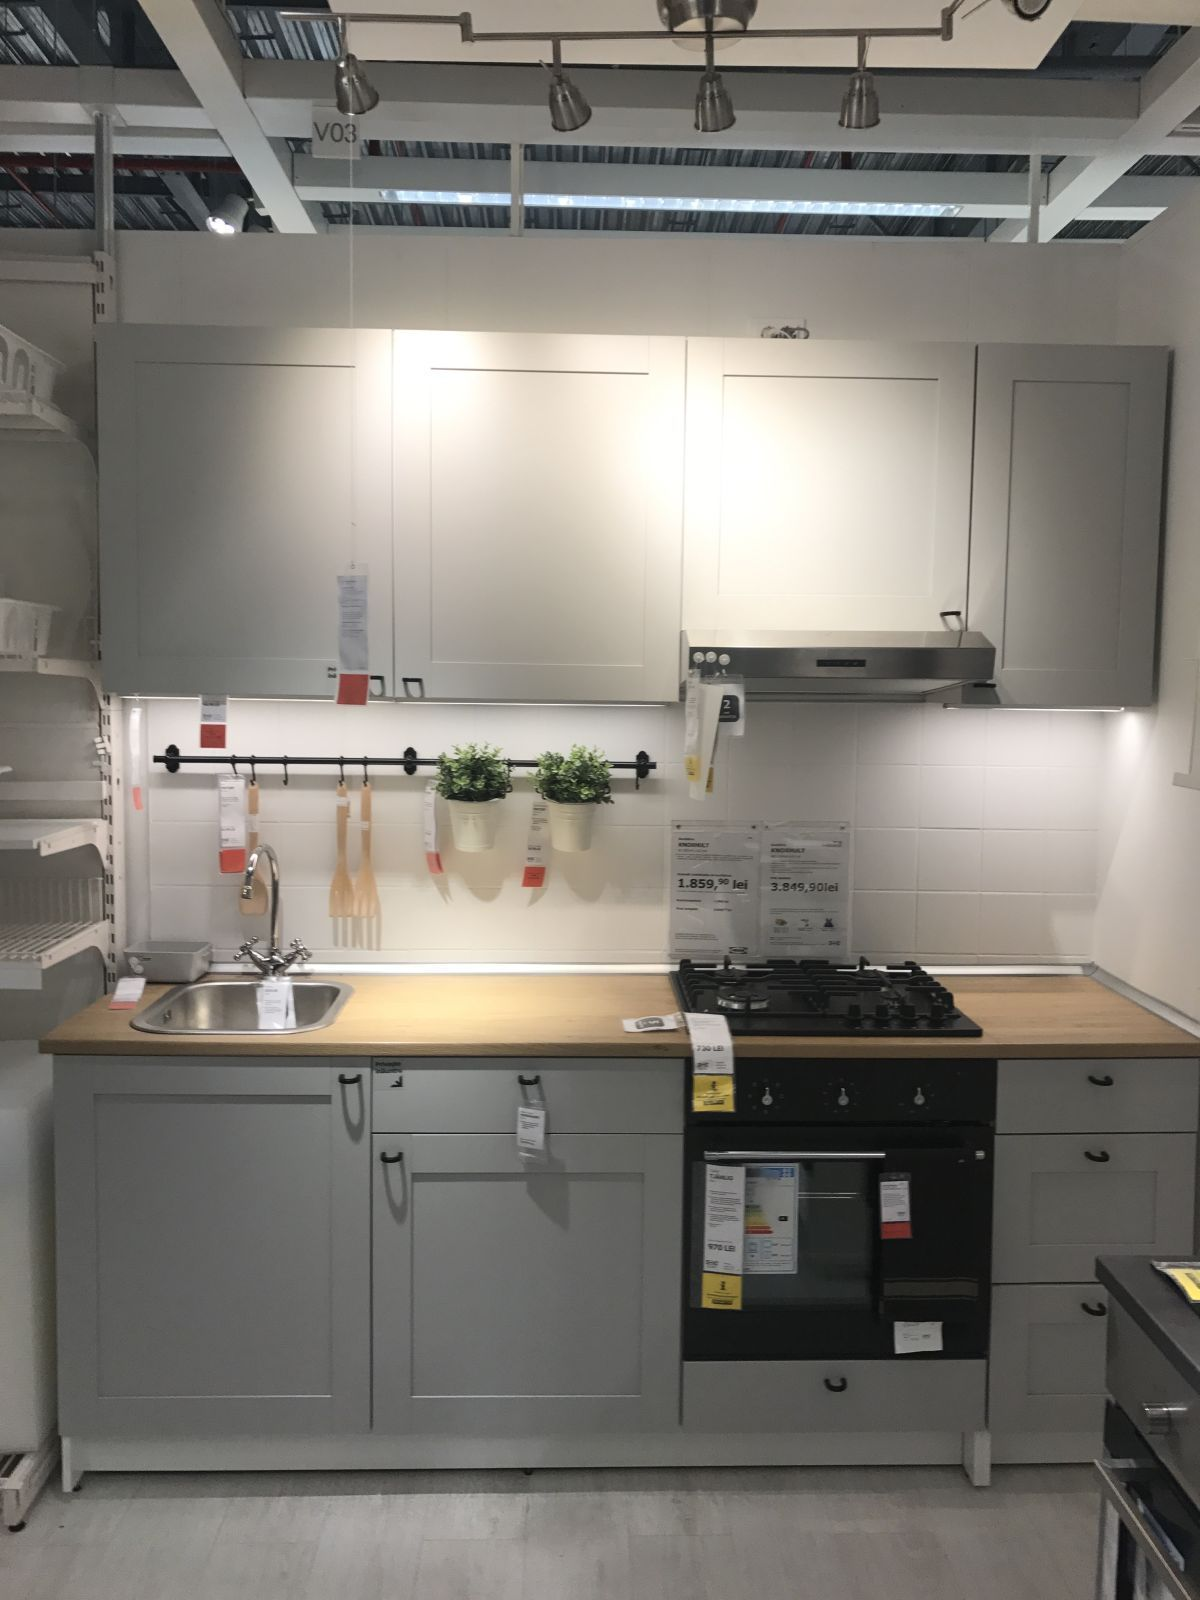 Kitchen Layout Design Tool: Create A Stylish Space Starting With An IKEA Kitchen